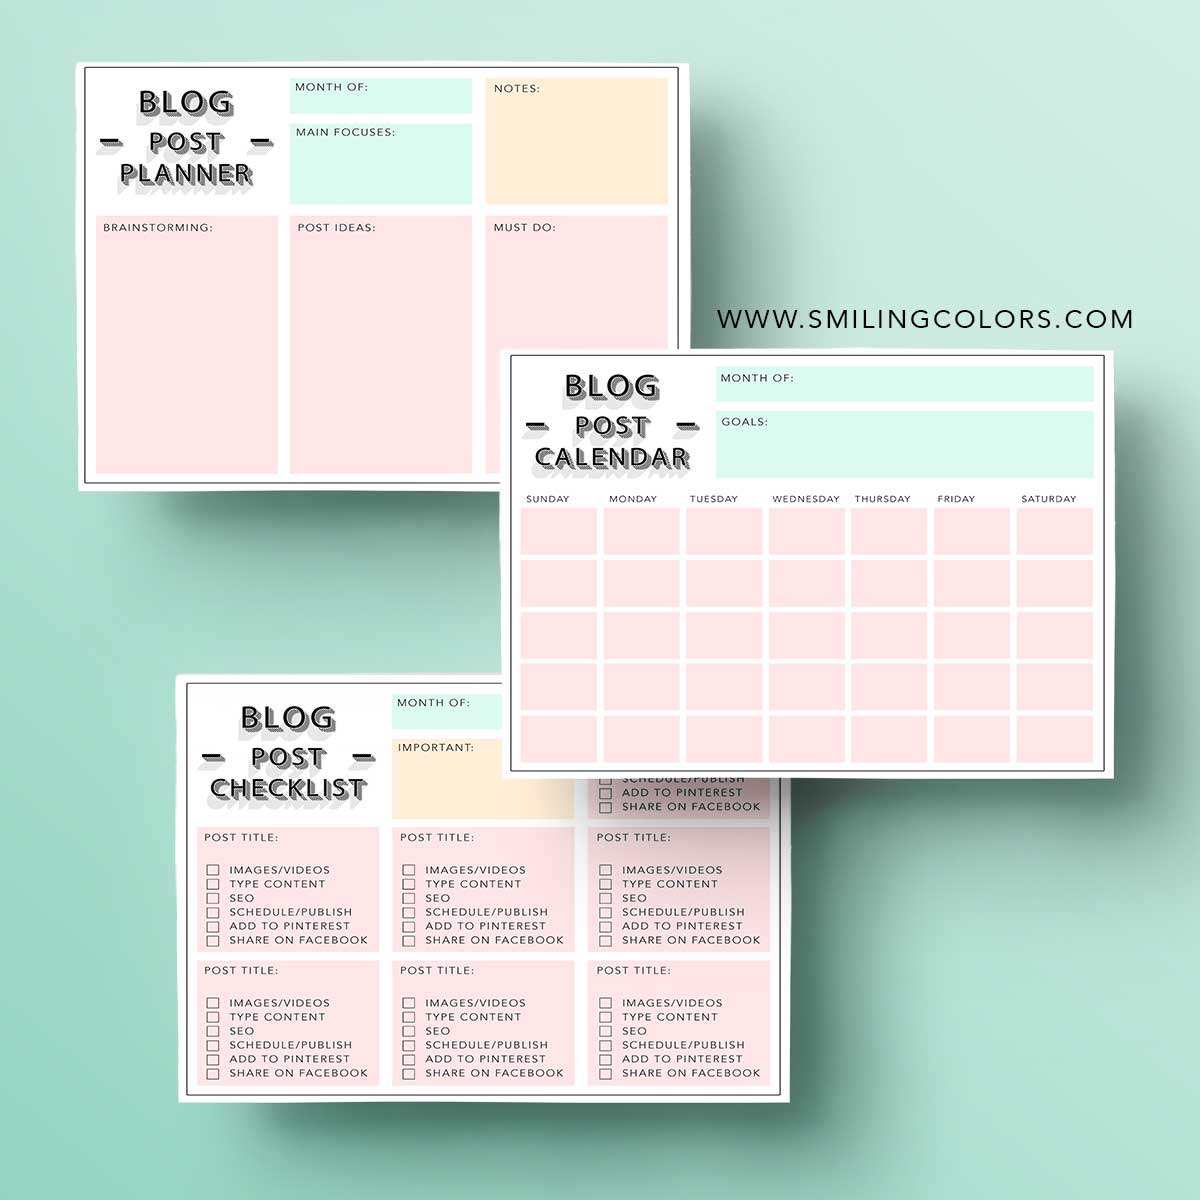 FREE blog planner printables to help you get organized